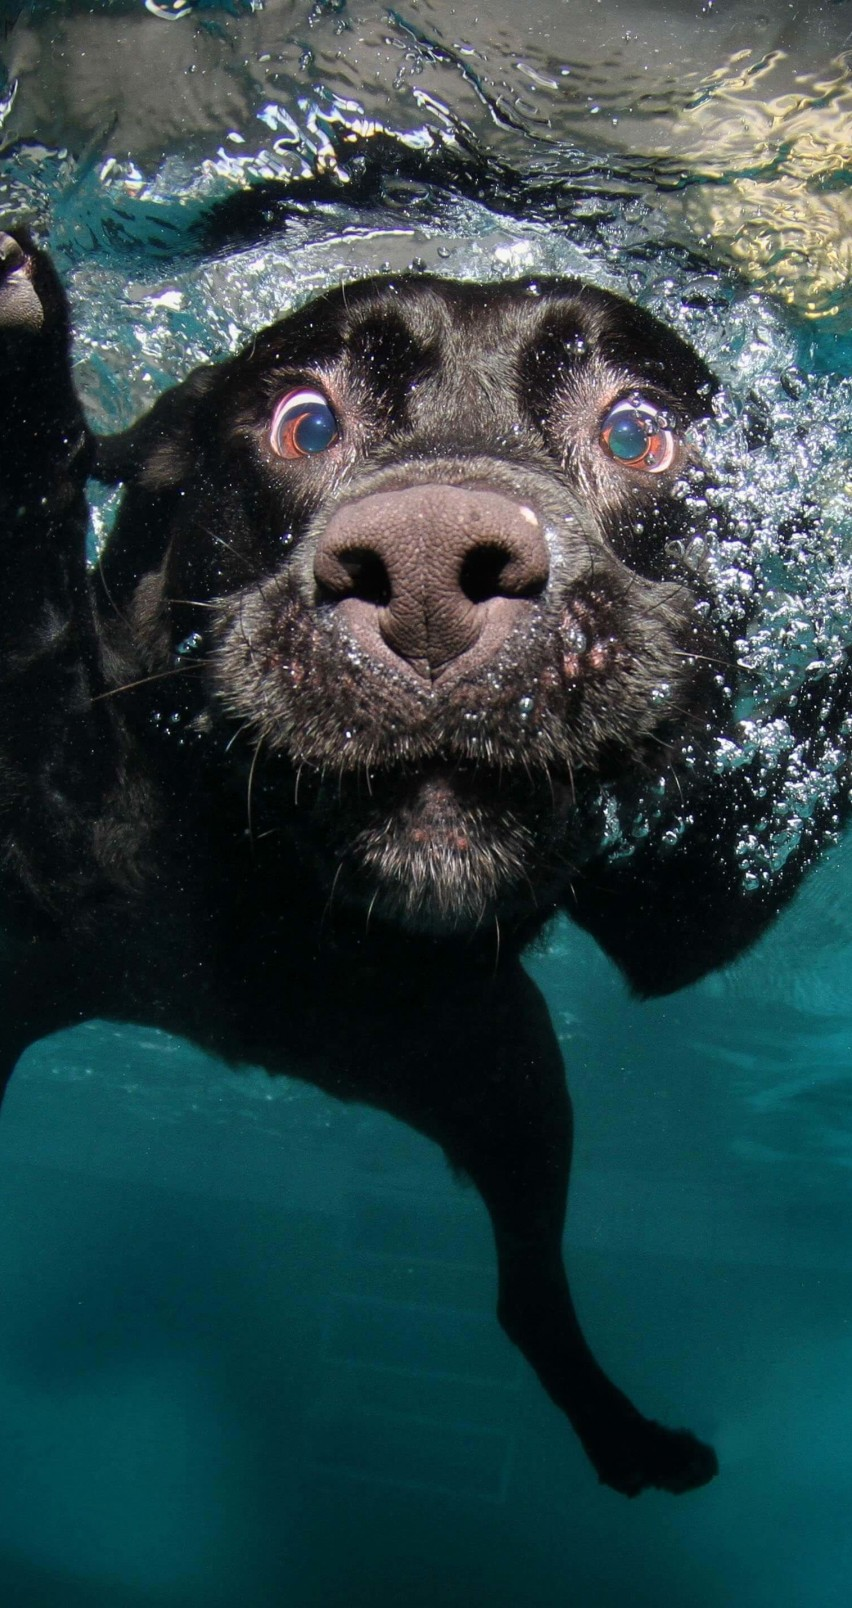 Underwater Dog Wallpaper for Apple iPhone 6 / 6s